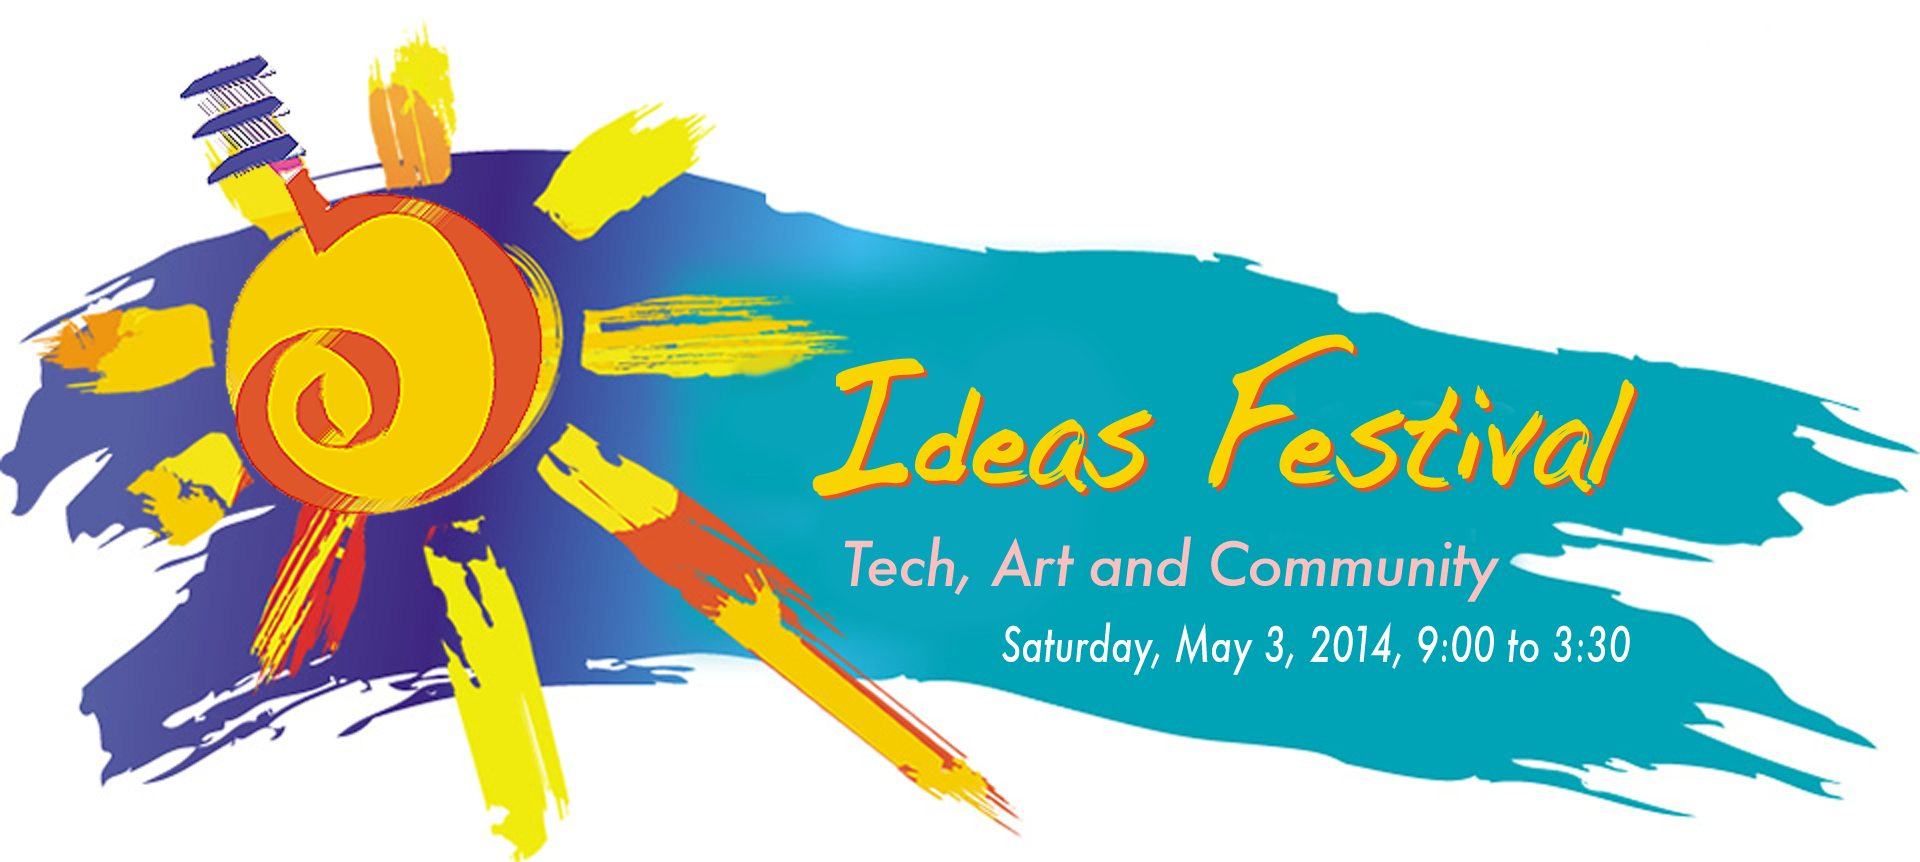 SPRINGFEST 2014 – Hawaii Ideas Festival